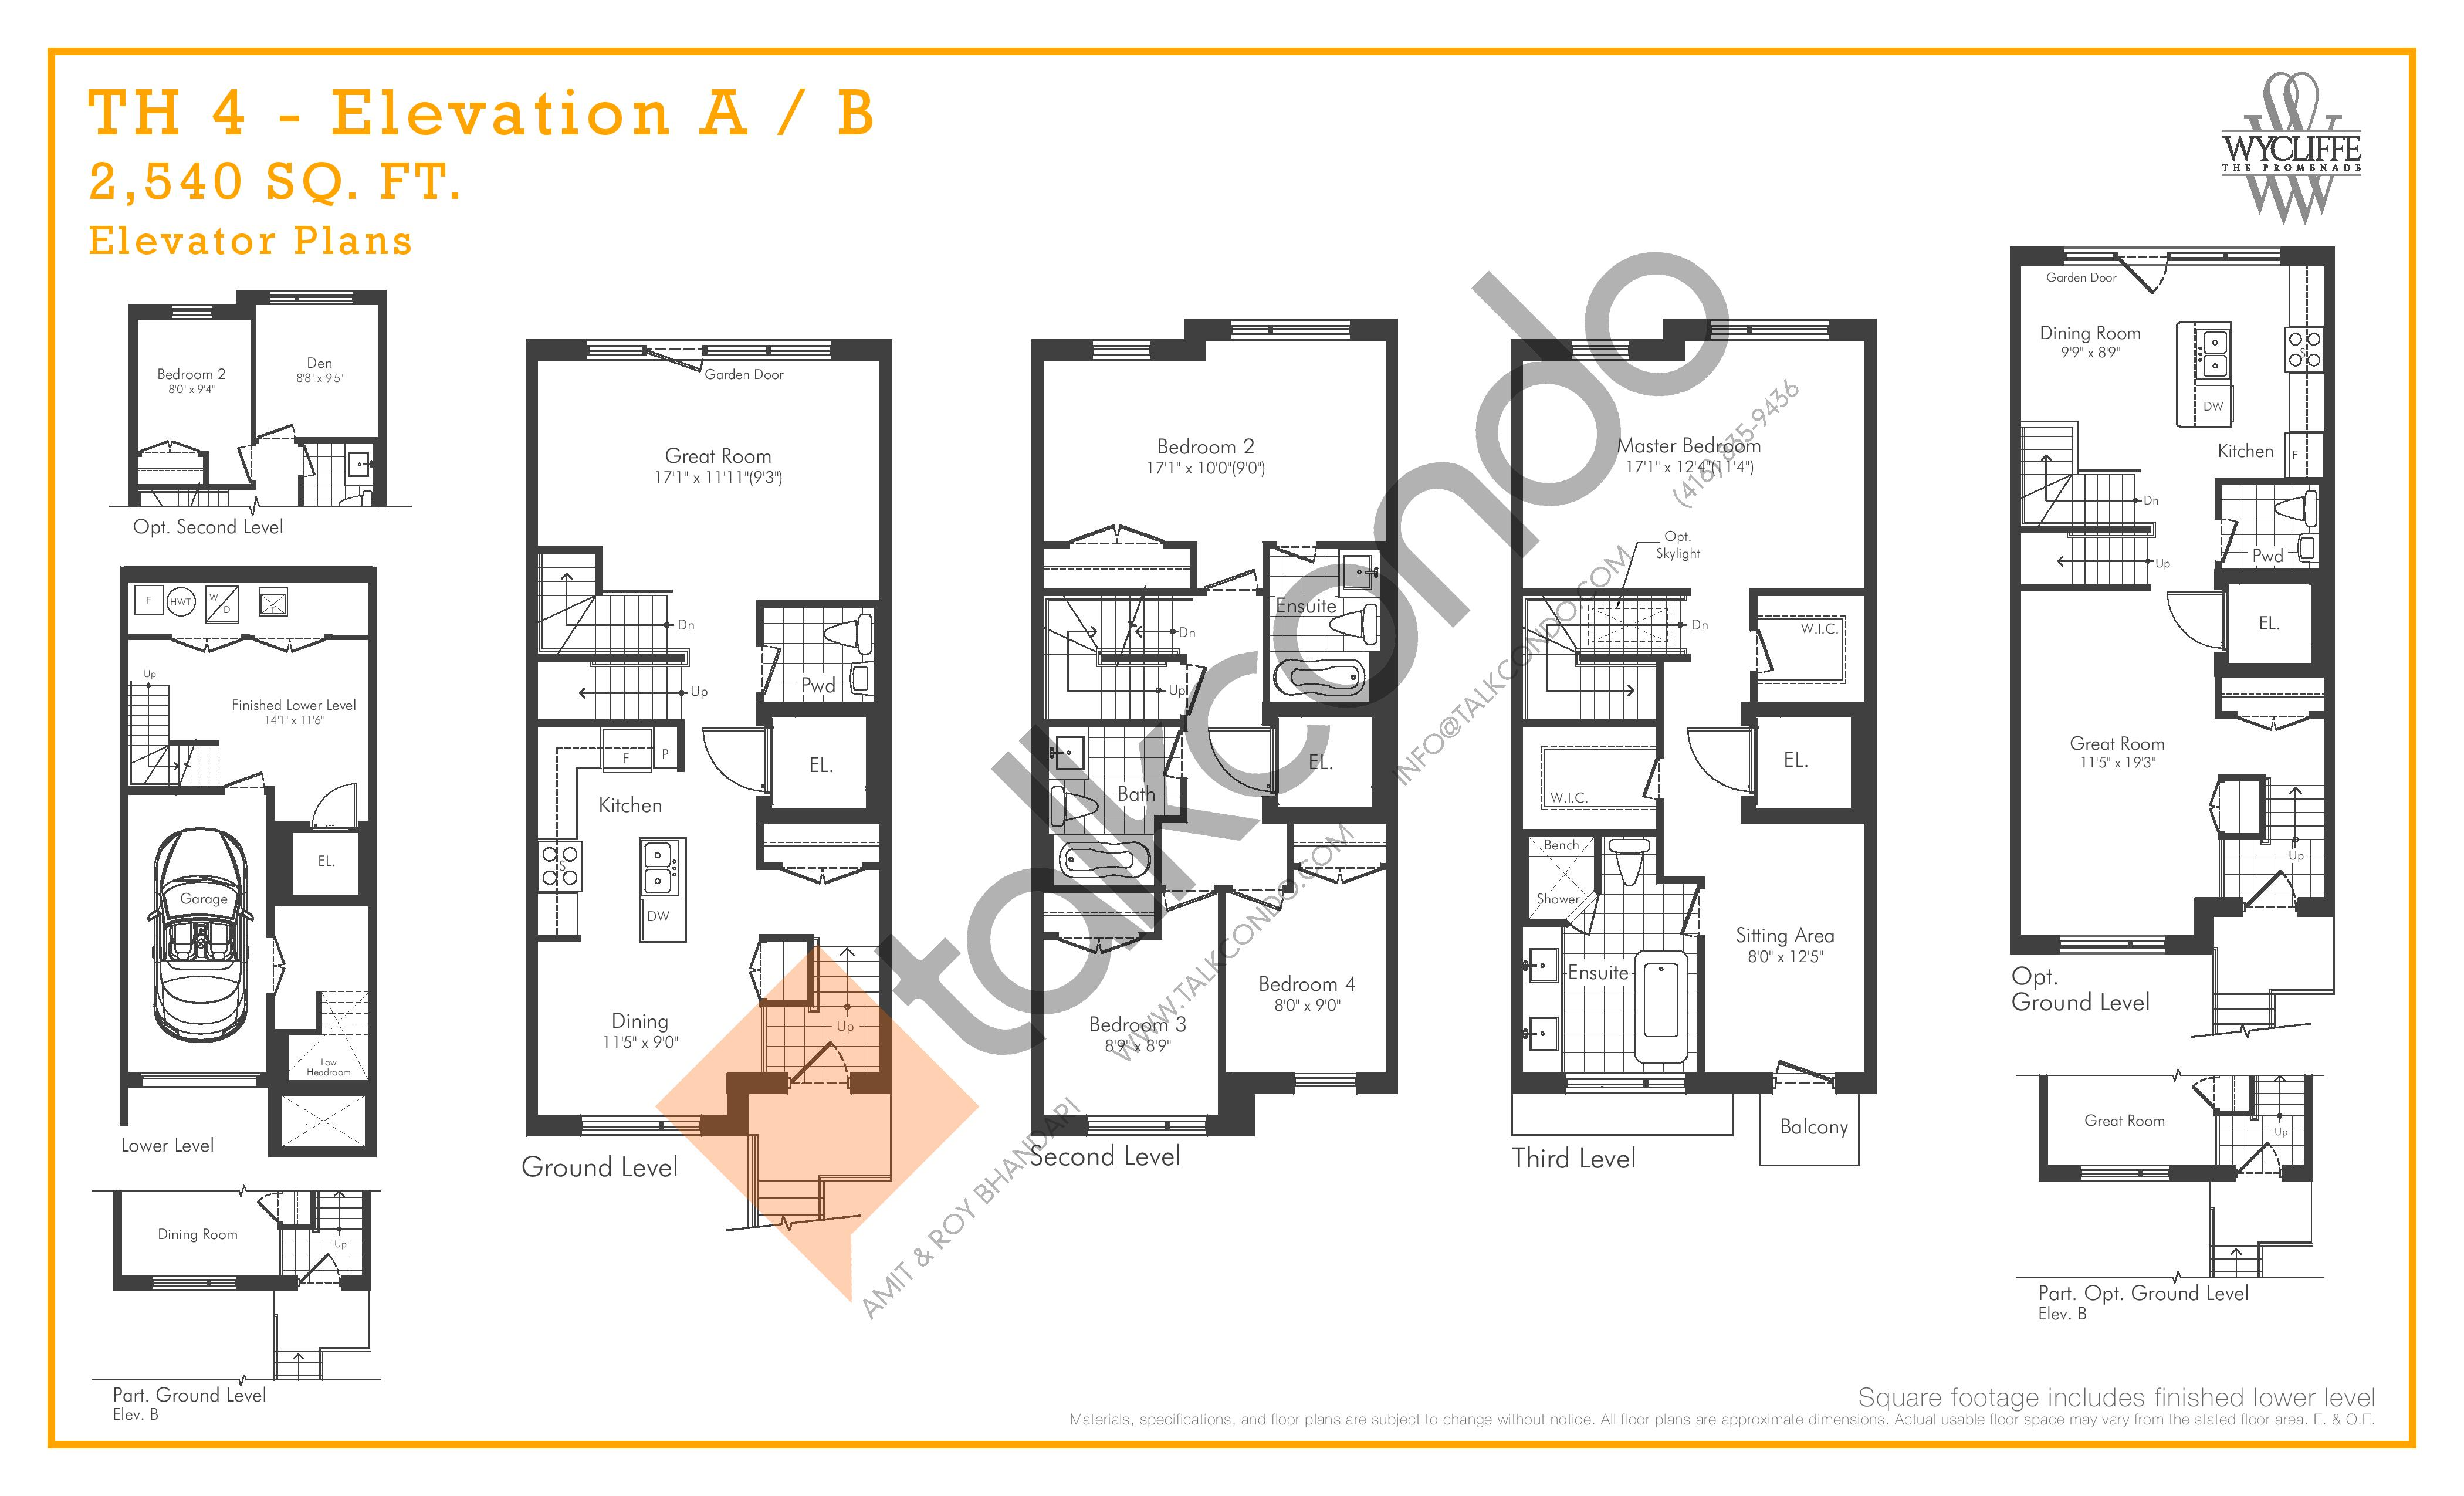 TH 4 - Elevation A/B Elevator Plans Floor Plan at Wycliffe at the Promenade - 2540 sq.ft